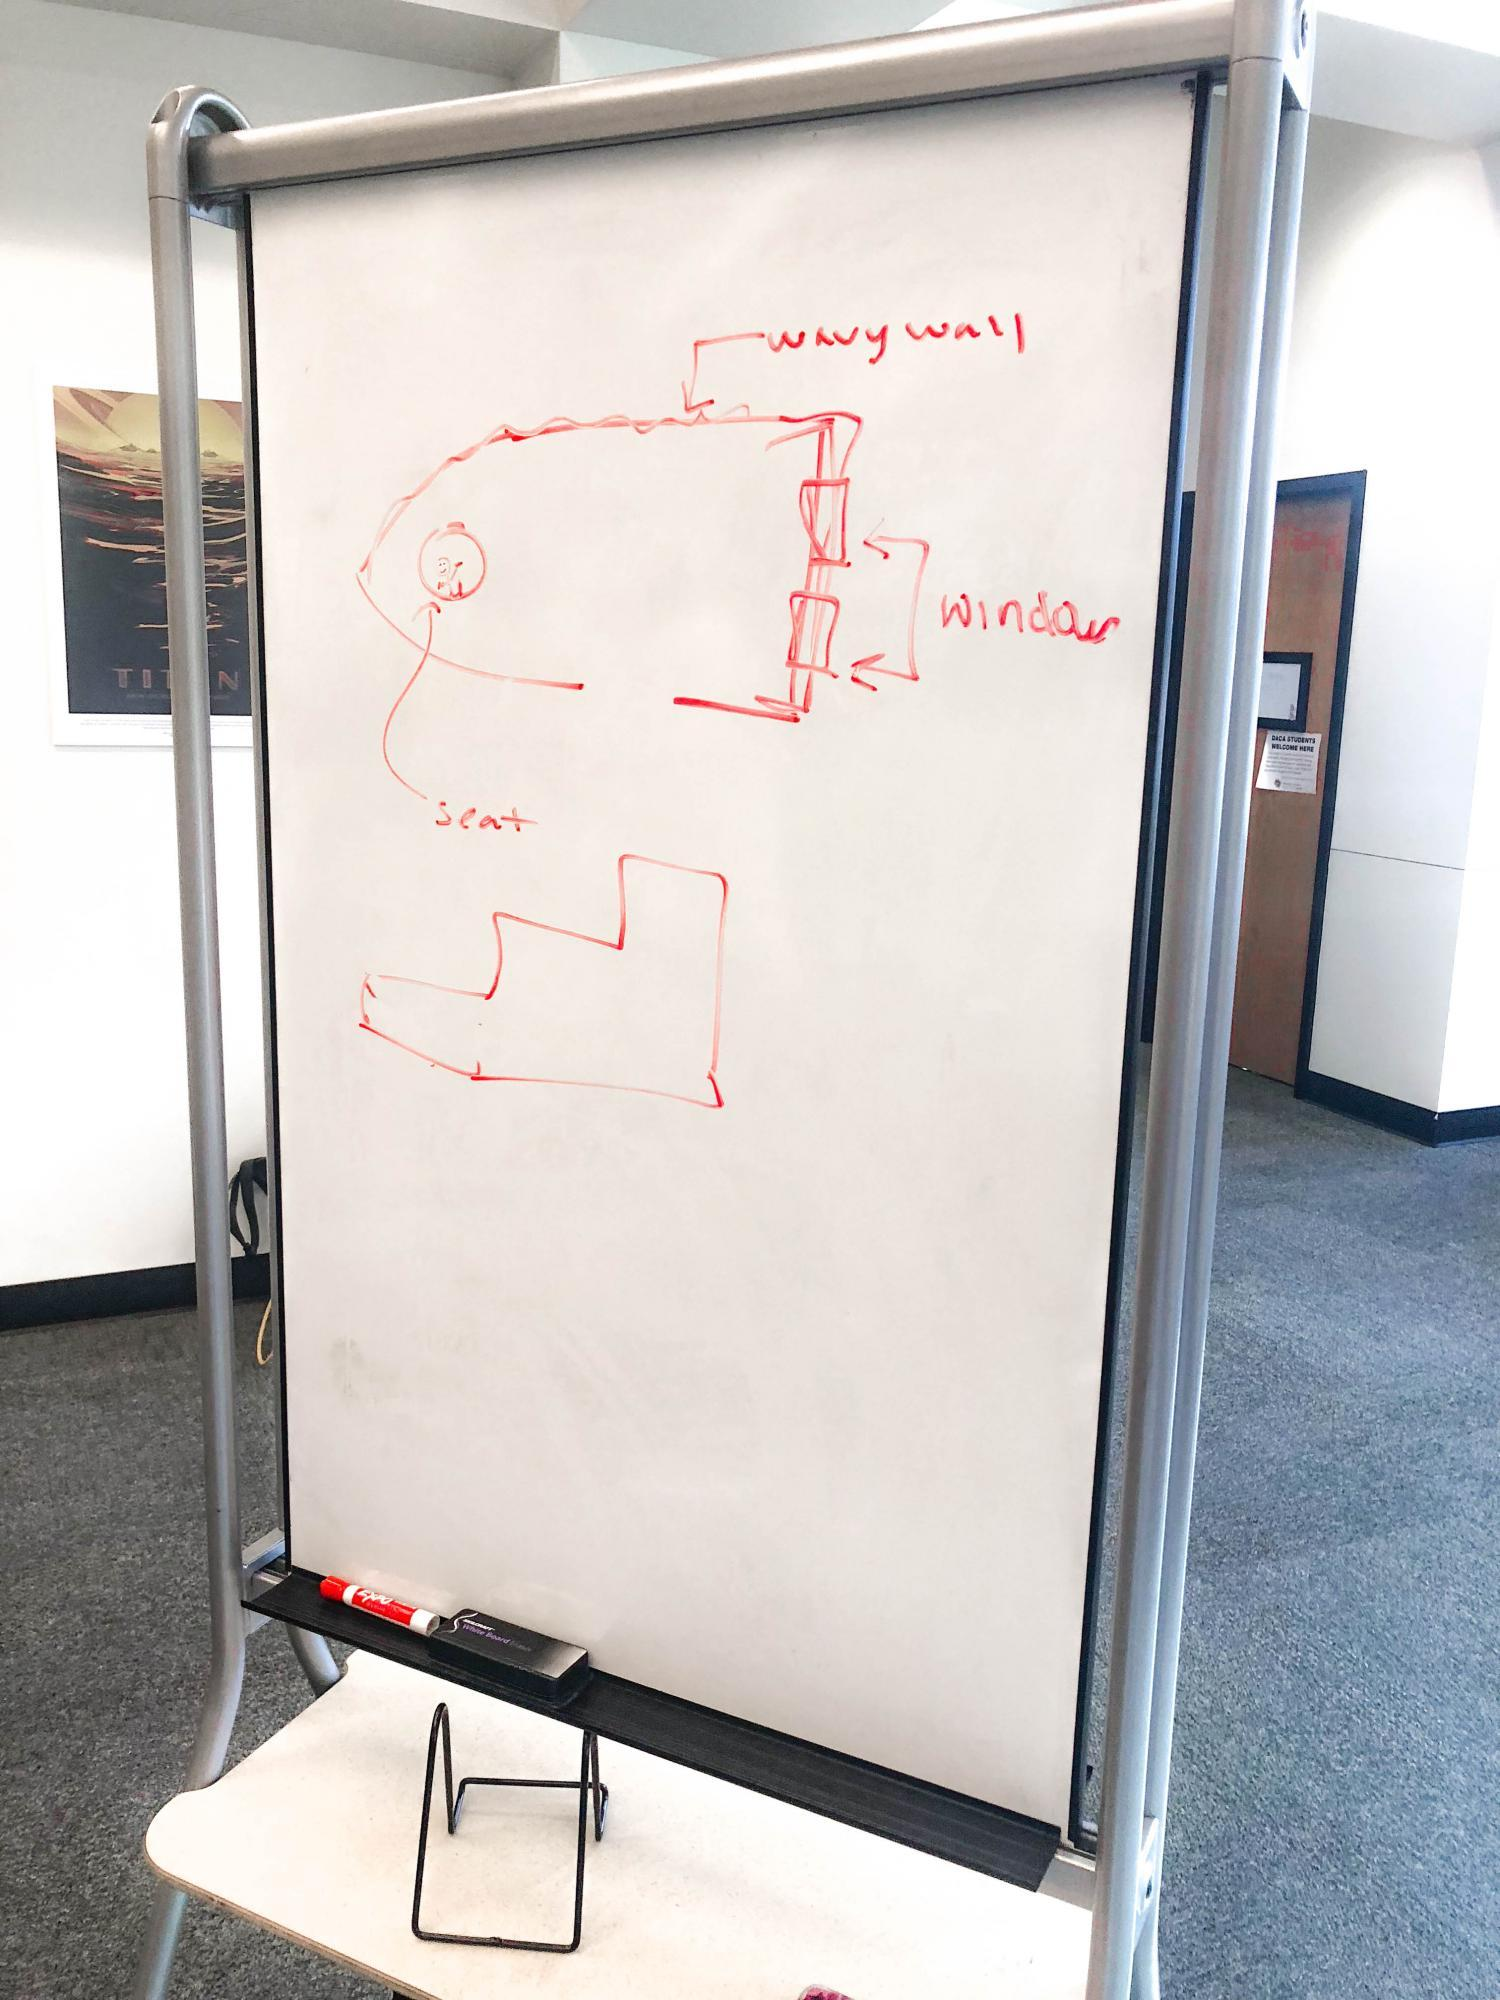 Concept art on a whiteboard.